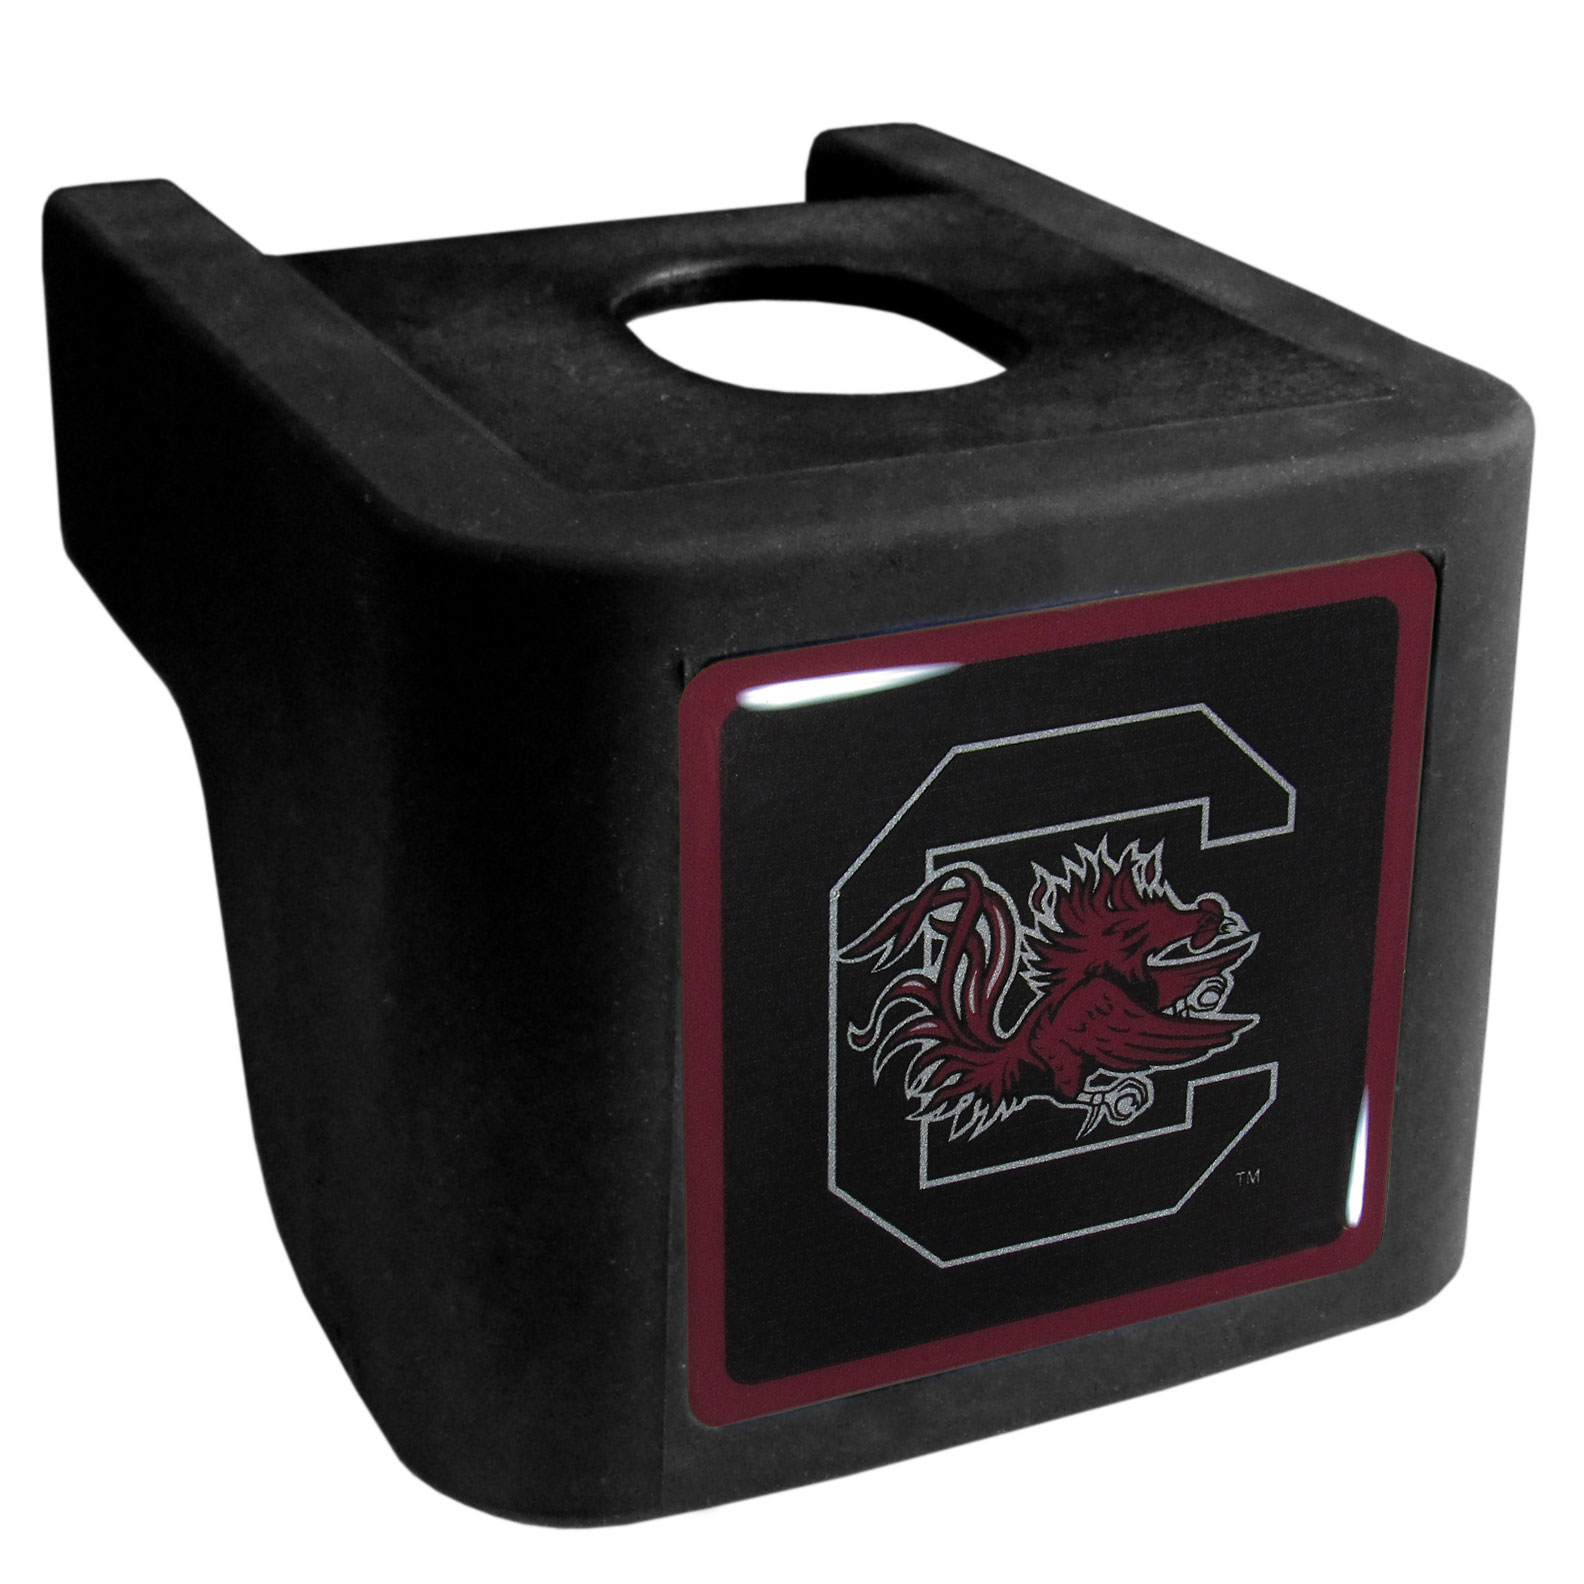 S. Carolina Gamecocks Shin Shield Hitch Cover - This unique hitch cover features a large S. Carolina Gamecocks logo. If you have ever hooked up a trailer or boat your have probably smashed your shins on the ball hitch a few times. This revolutionary shin shield hitch cover provides your much abused shins with the protection they deserve! The tough rubber hitch is rated to work with Class V hitch receivers hauling up to 17,000 gross trailer weight and 1,700 tongue weight allowing you to leave it on while hauling.